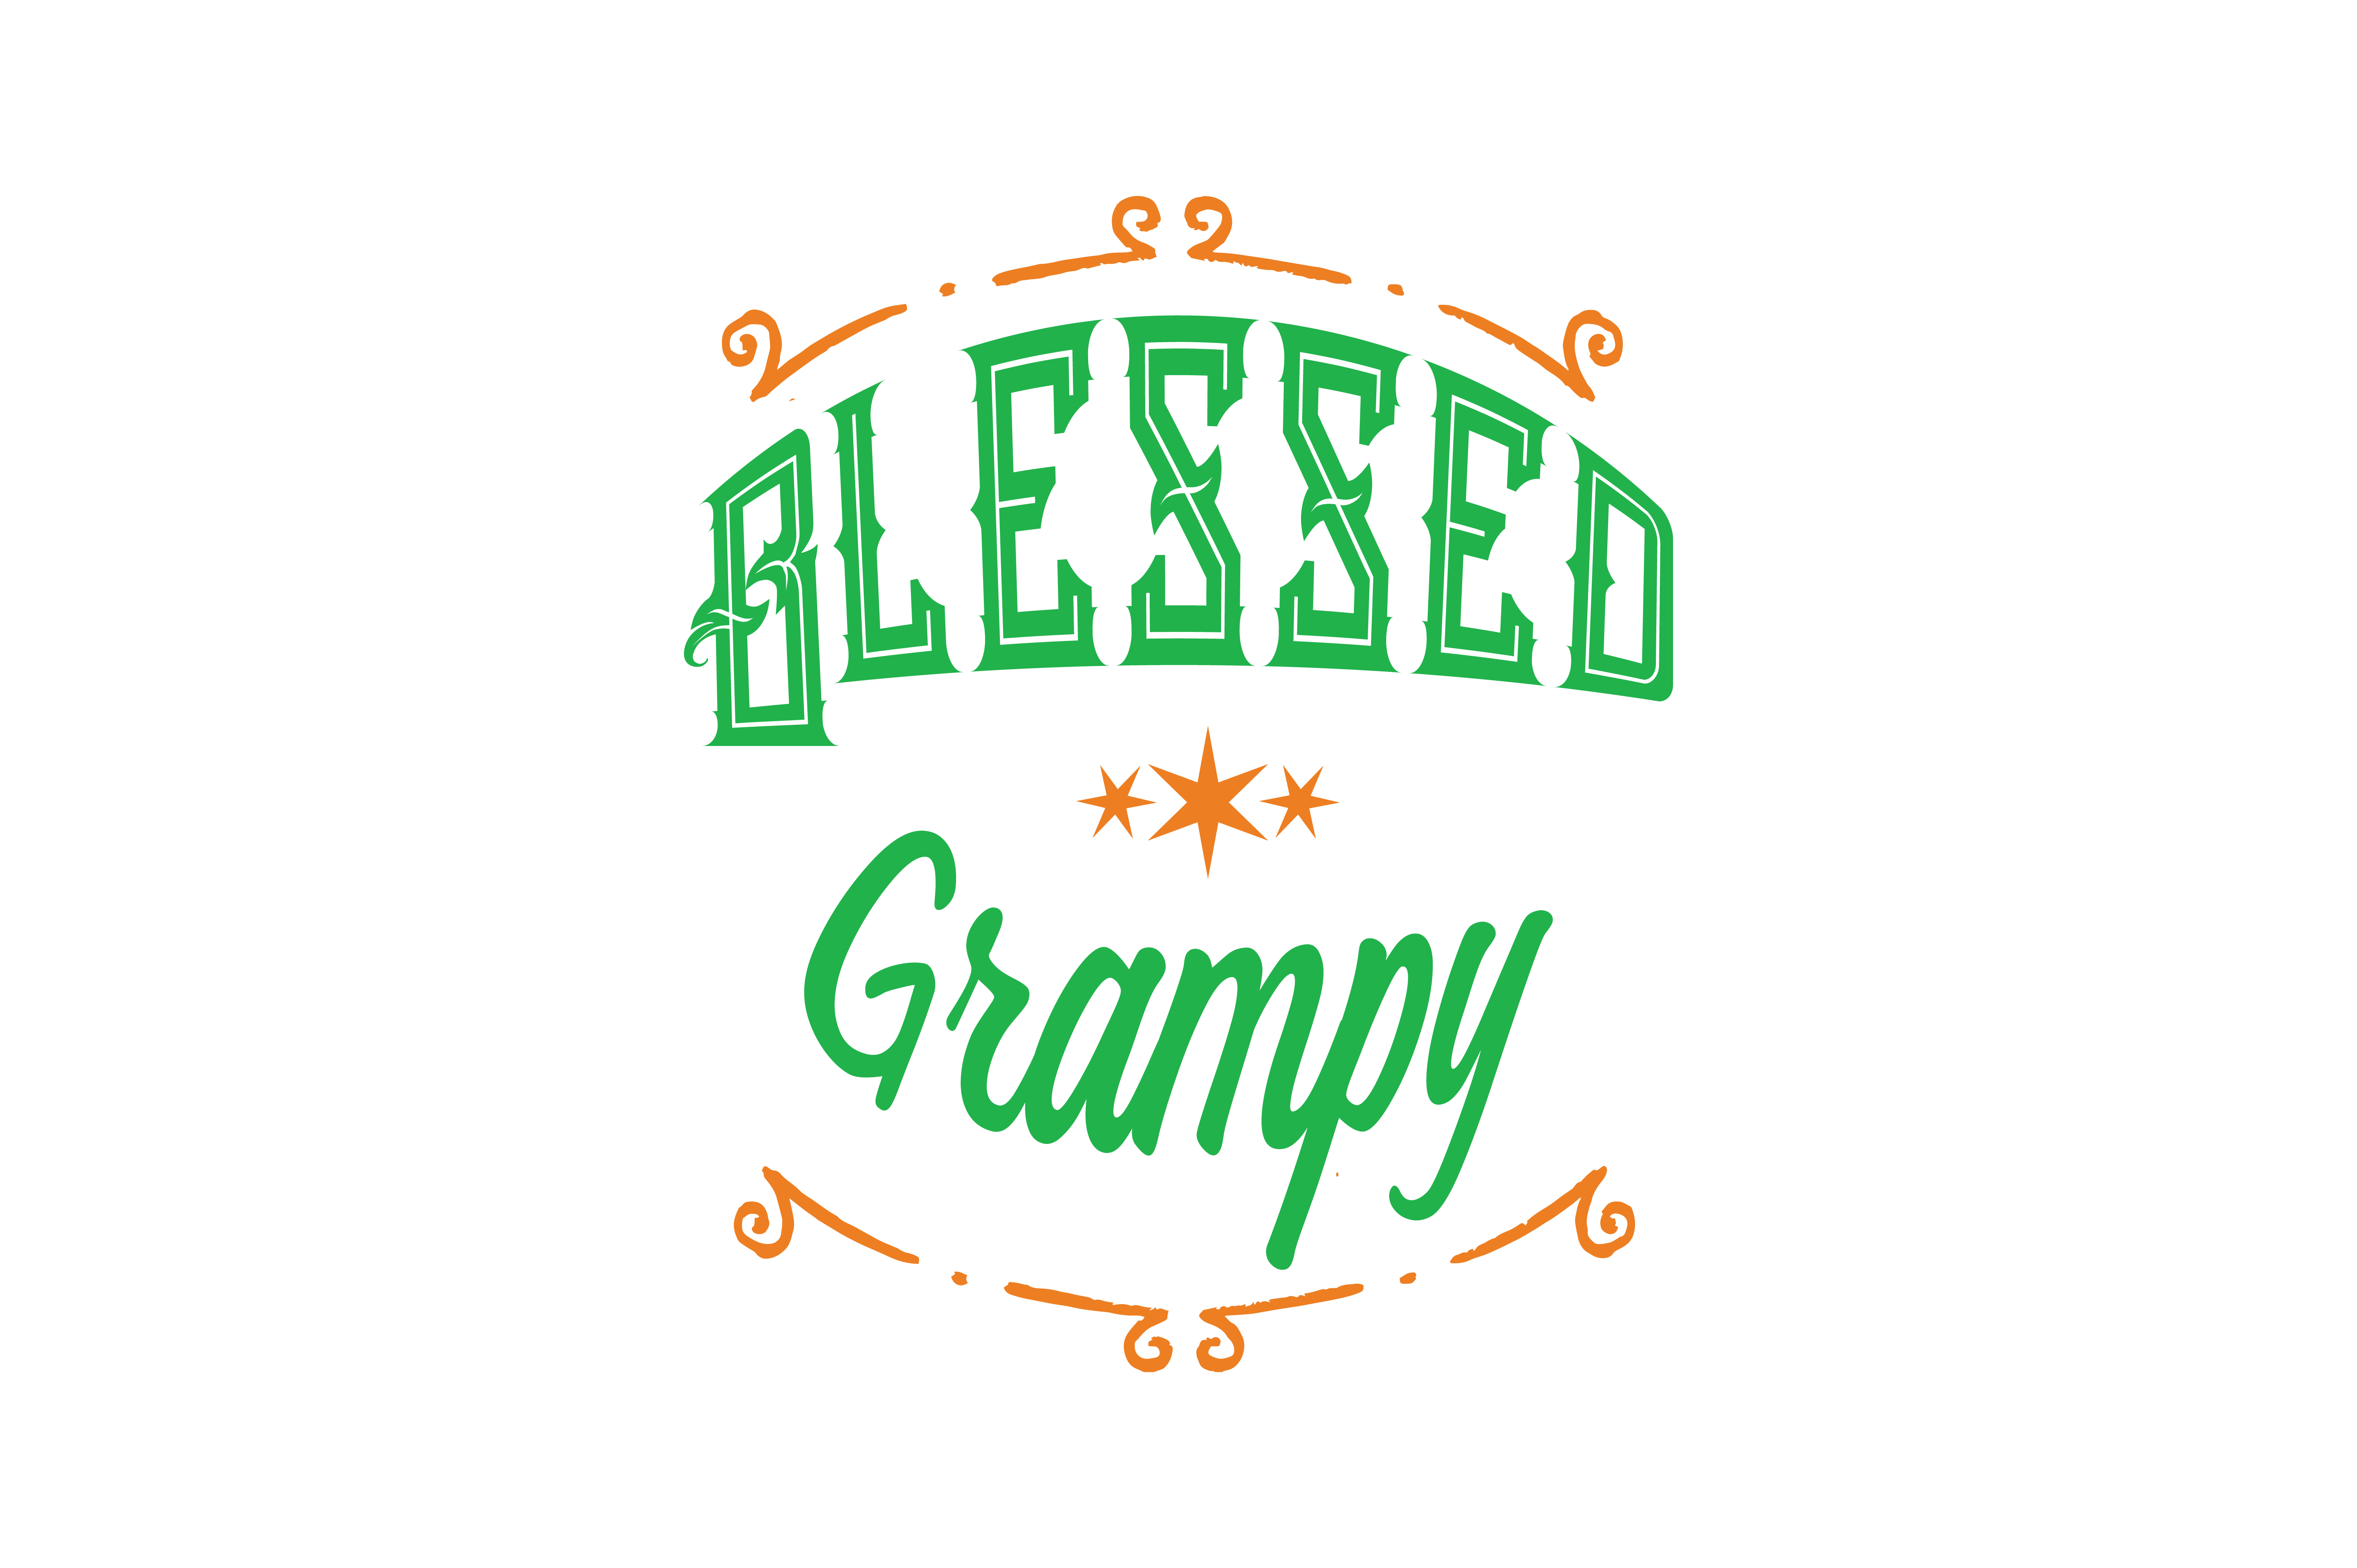 Download Free Blessed Grampy Quote Svg Cut Graphic By Thelucky Creative Fabrica for Cricut Explore, Silhouette and other cutting machines.